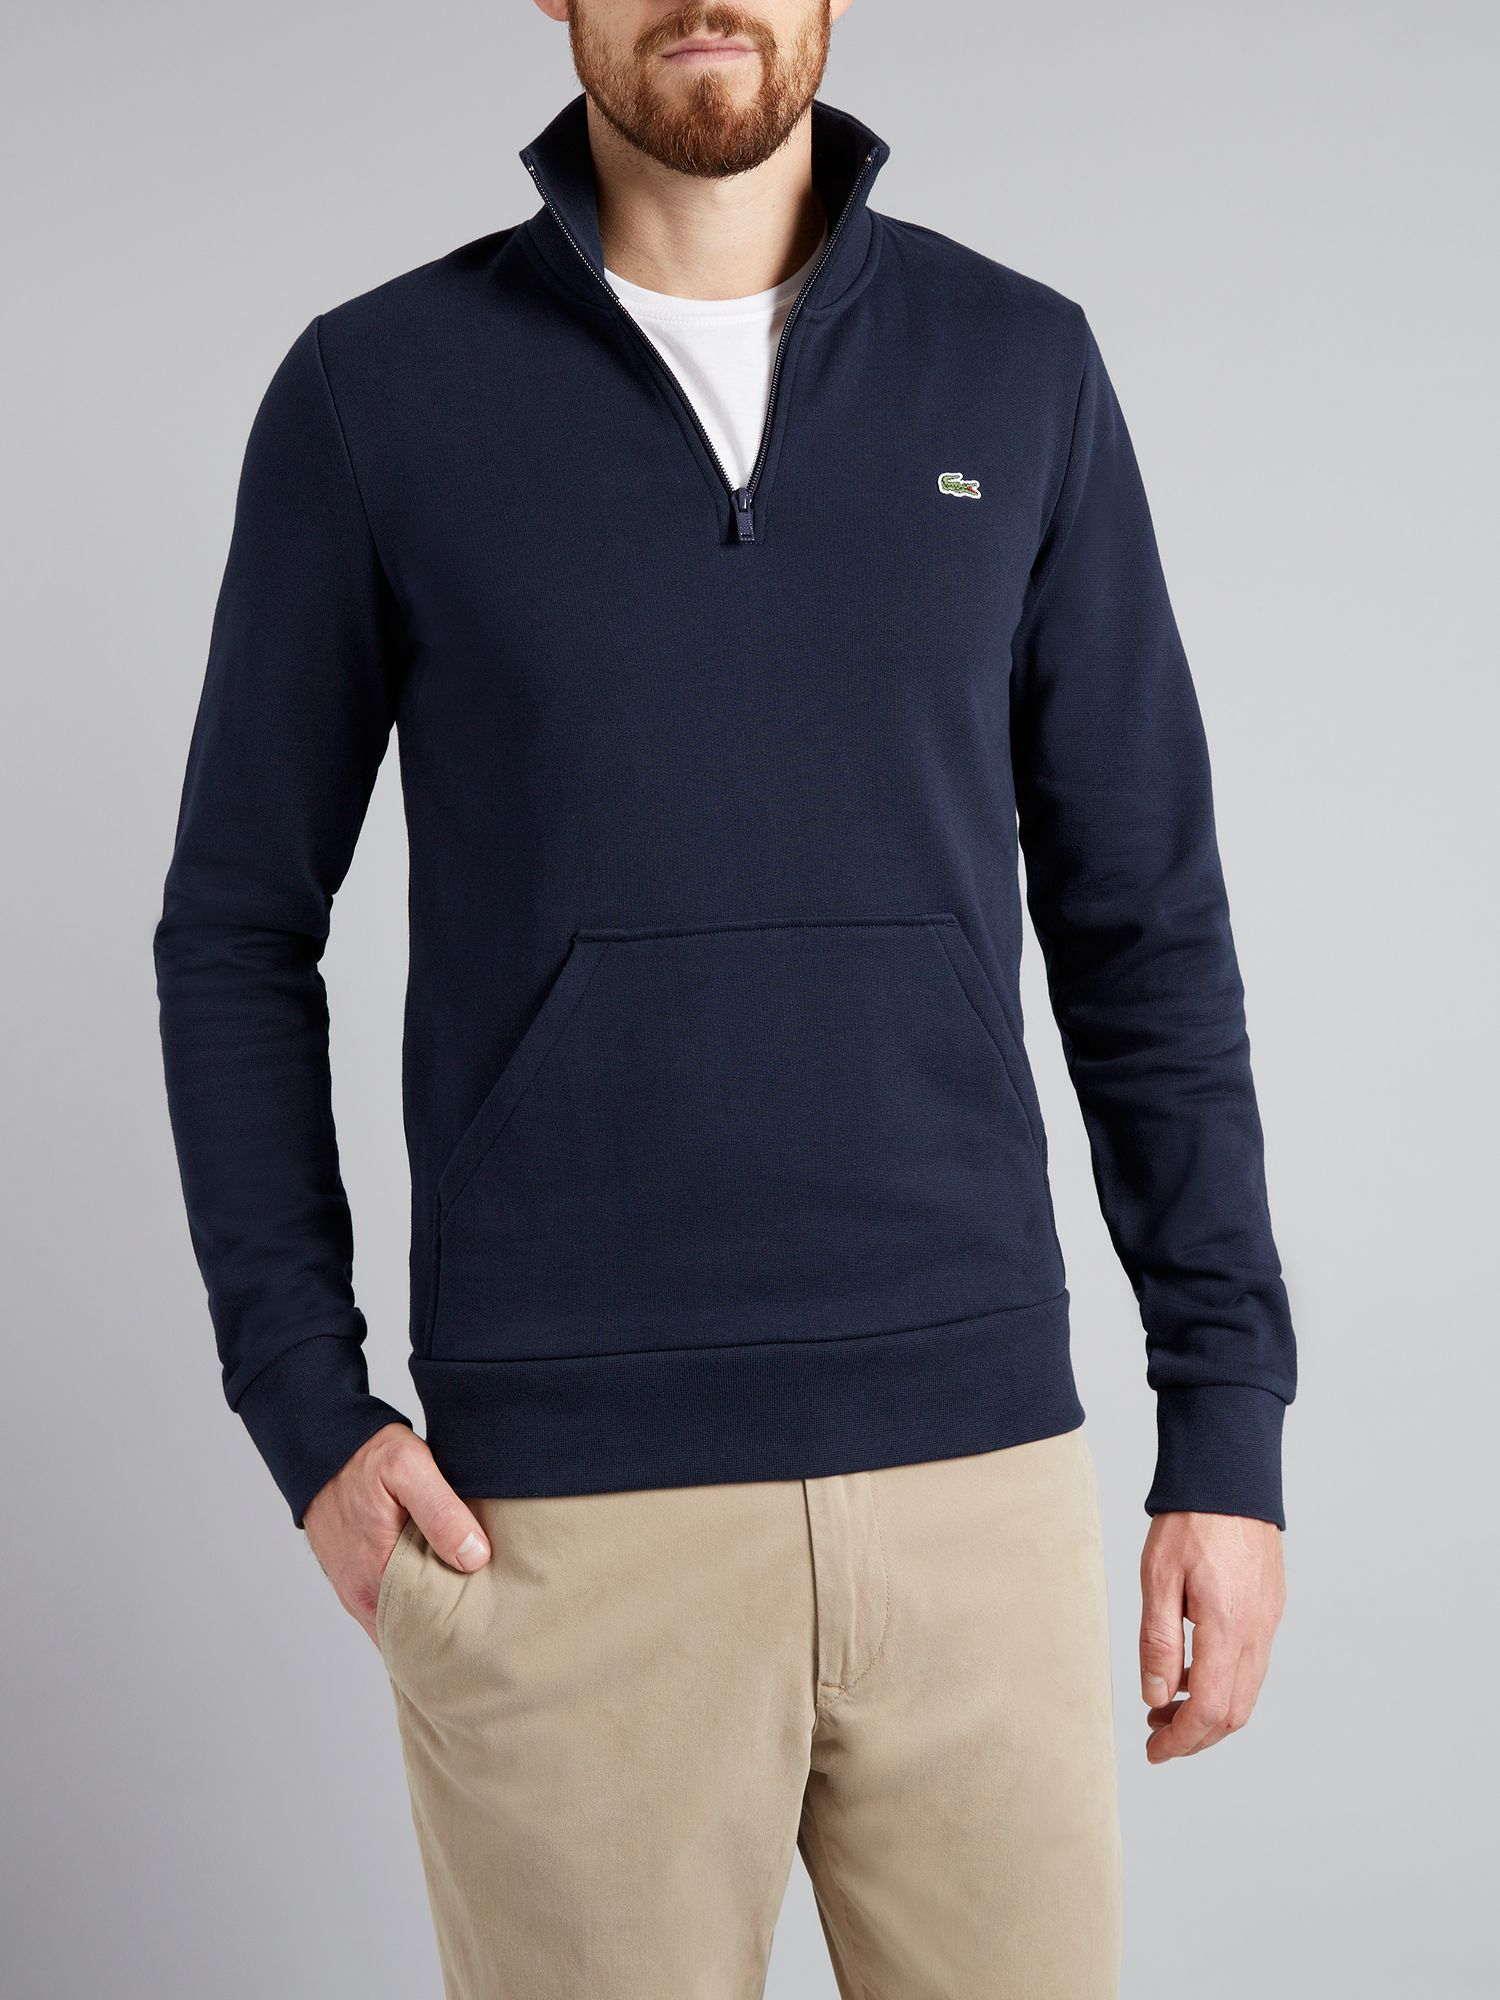 Half zip fleece sweater